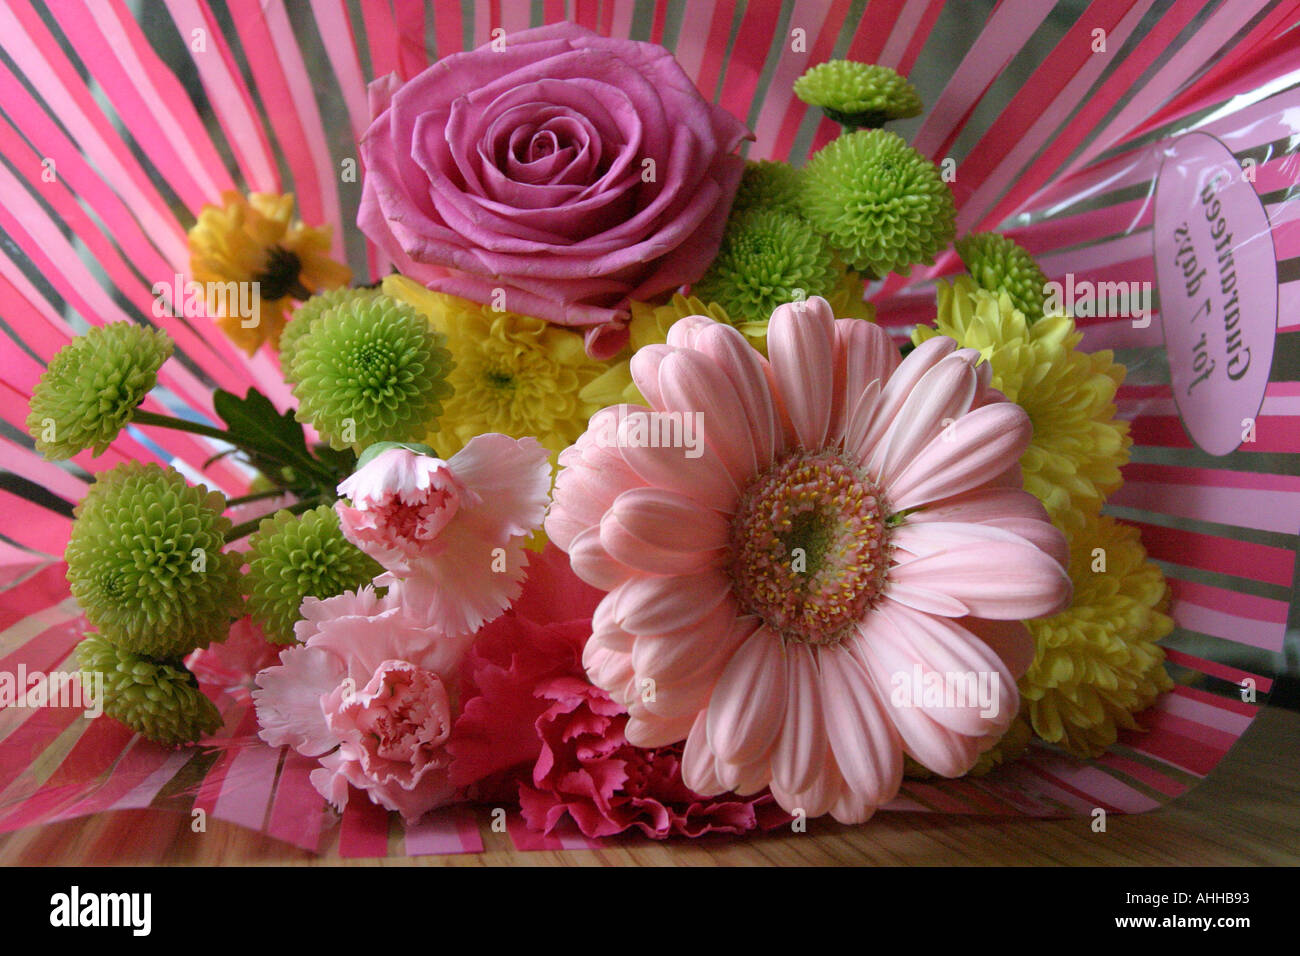 A Bunch Of Flowers And Pick Cellophane Wrapper Stock Photo